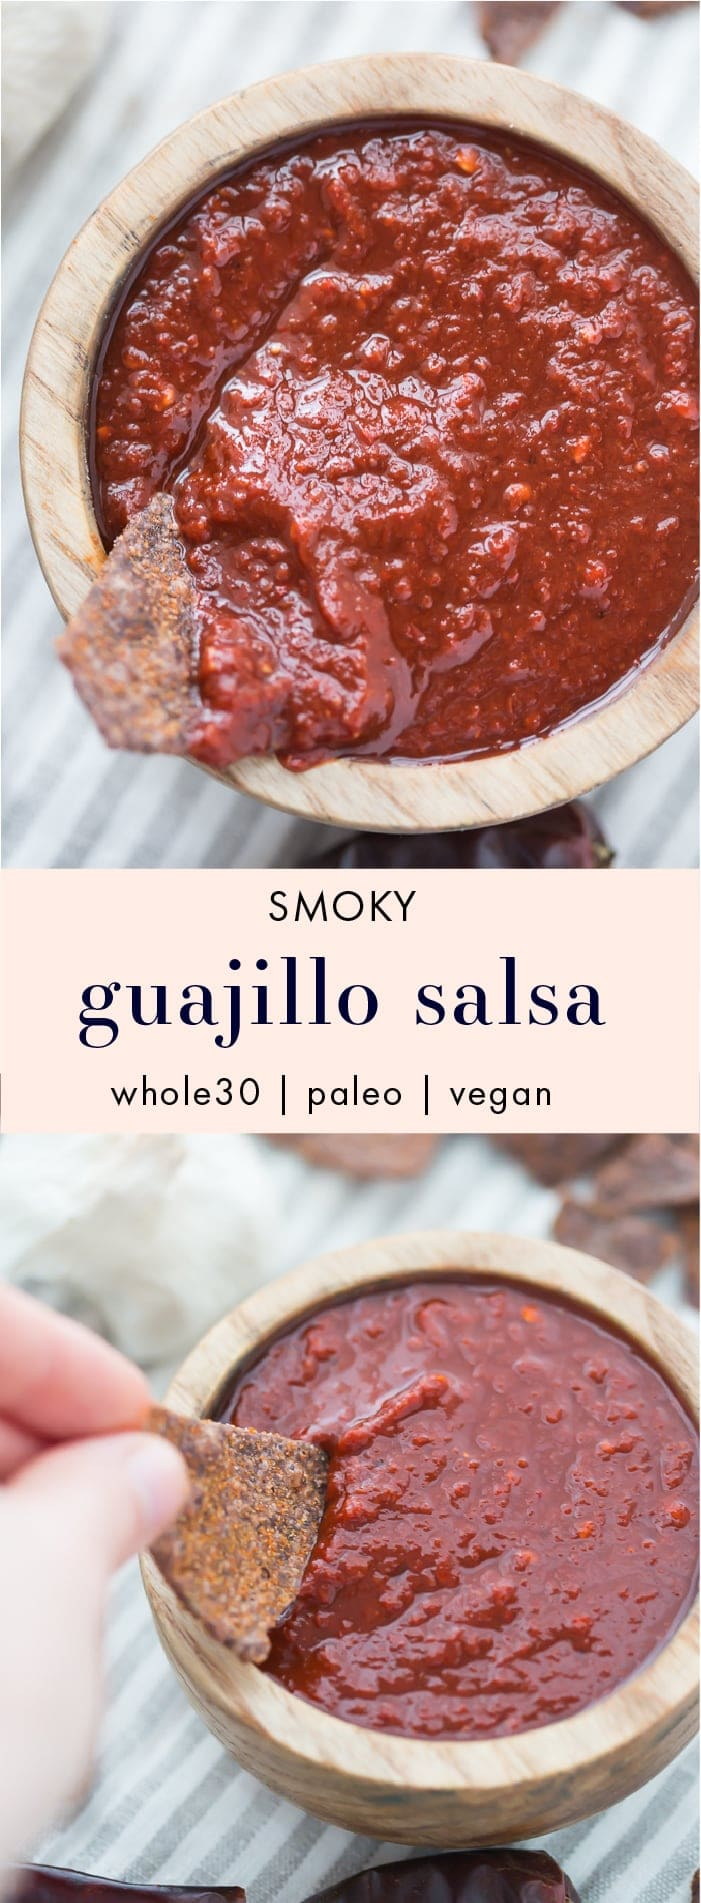 This smoky guajillo salsa recipe is deep and flavorful, full of toasted, dried guajillo chiles, garlic, and fresh tomatoes. It's the perfect smoky salsa recipe to keep in the fridge (at all times, pretty sure) so you can put it on all the things. Inspired by my favorite local taqueria salsa, you'll love this smoky salsa recipe, especially during warmer weather! Buy dried guajillo chiles here.